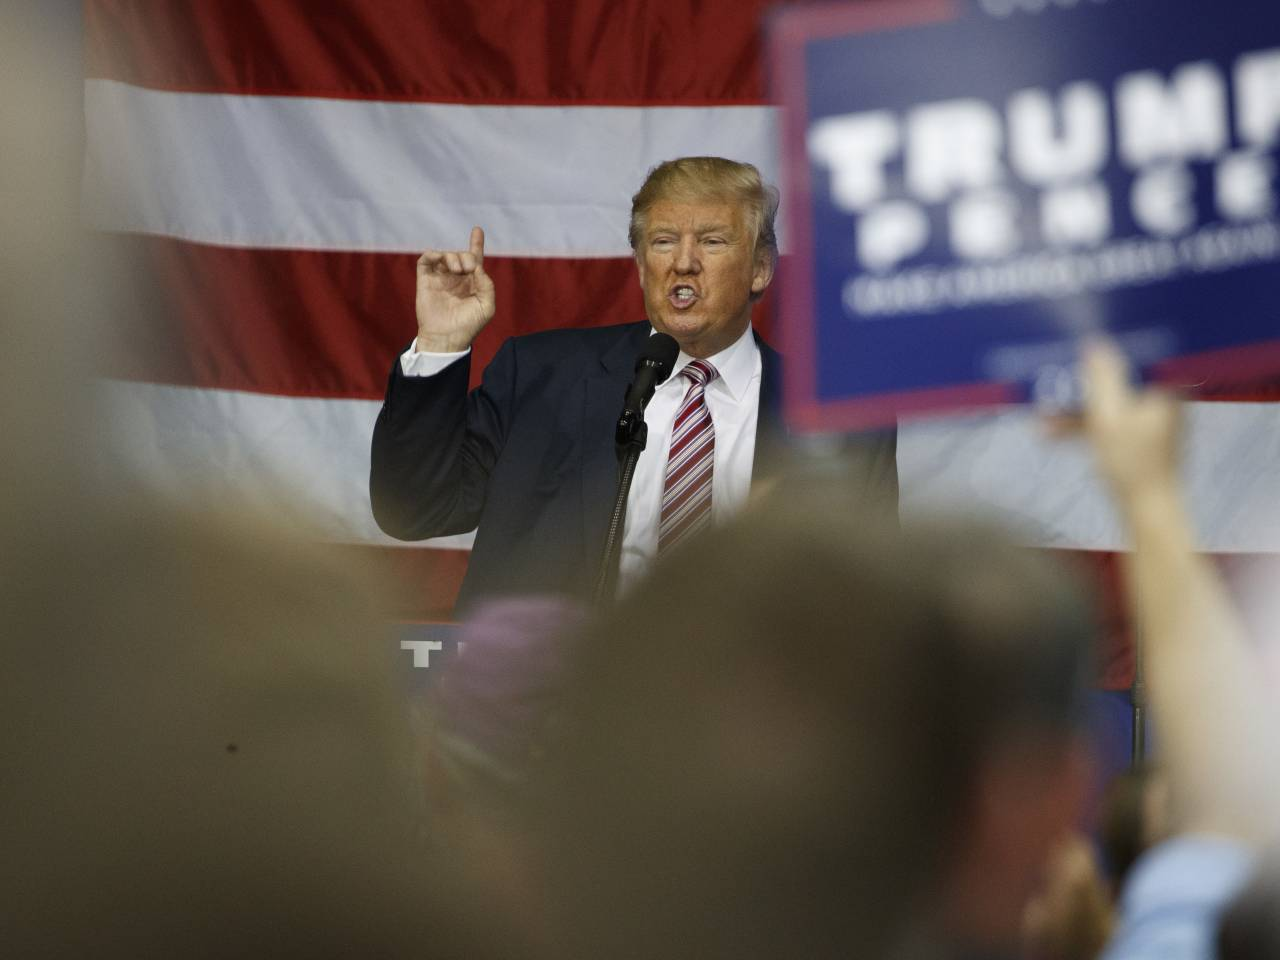 Donald Trump shows signs of surrender in Virginia: Fear and losing ...